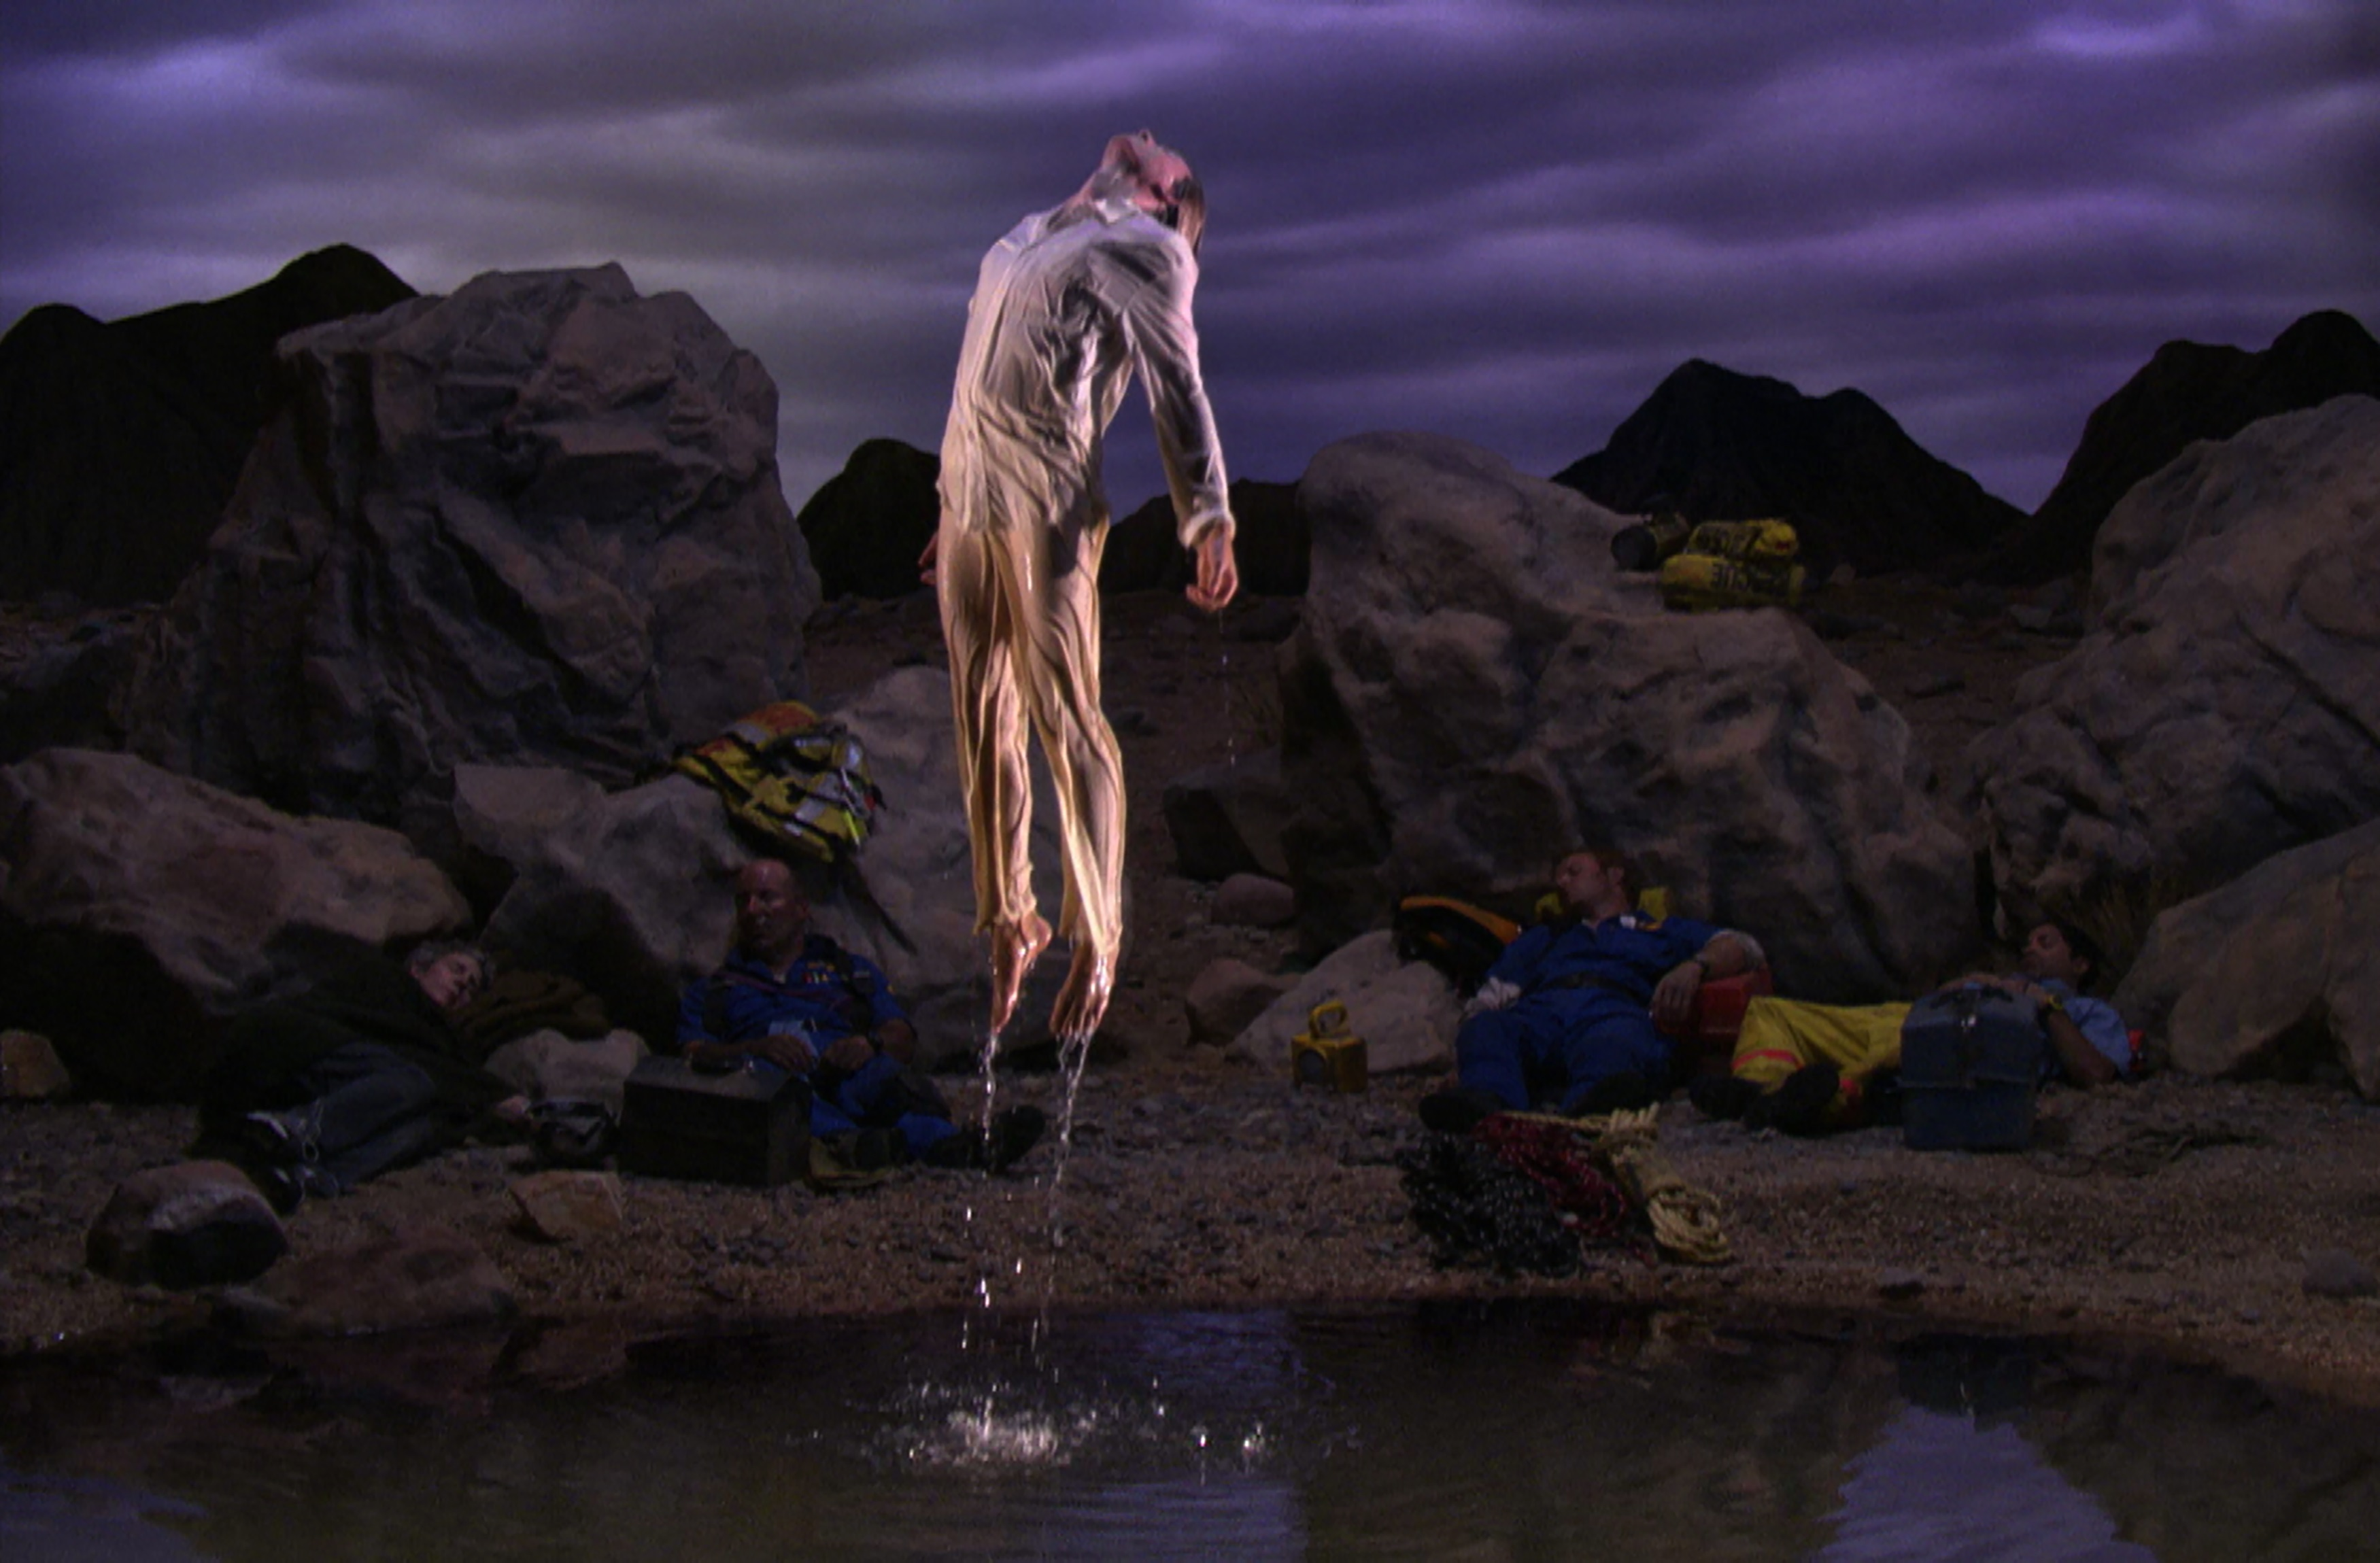 Bill Viola. Primera luz (First Light), 2002.